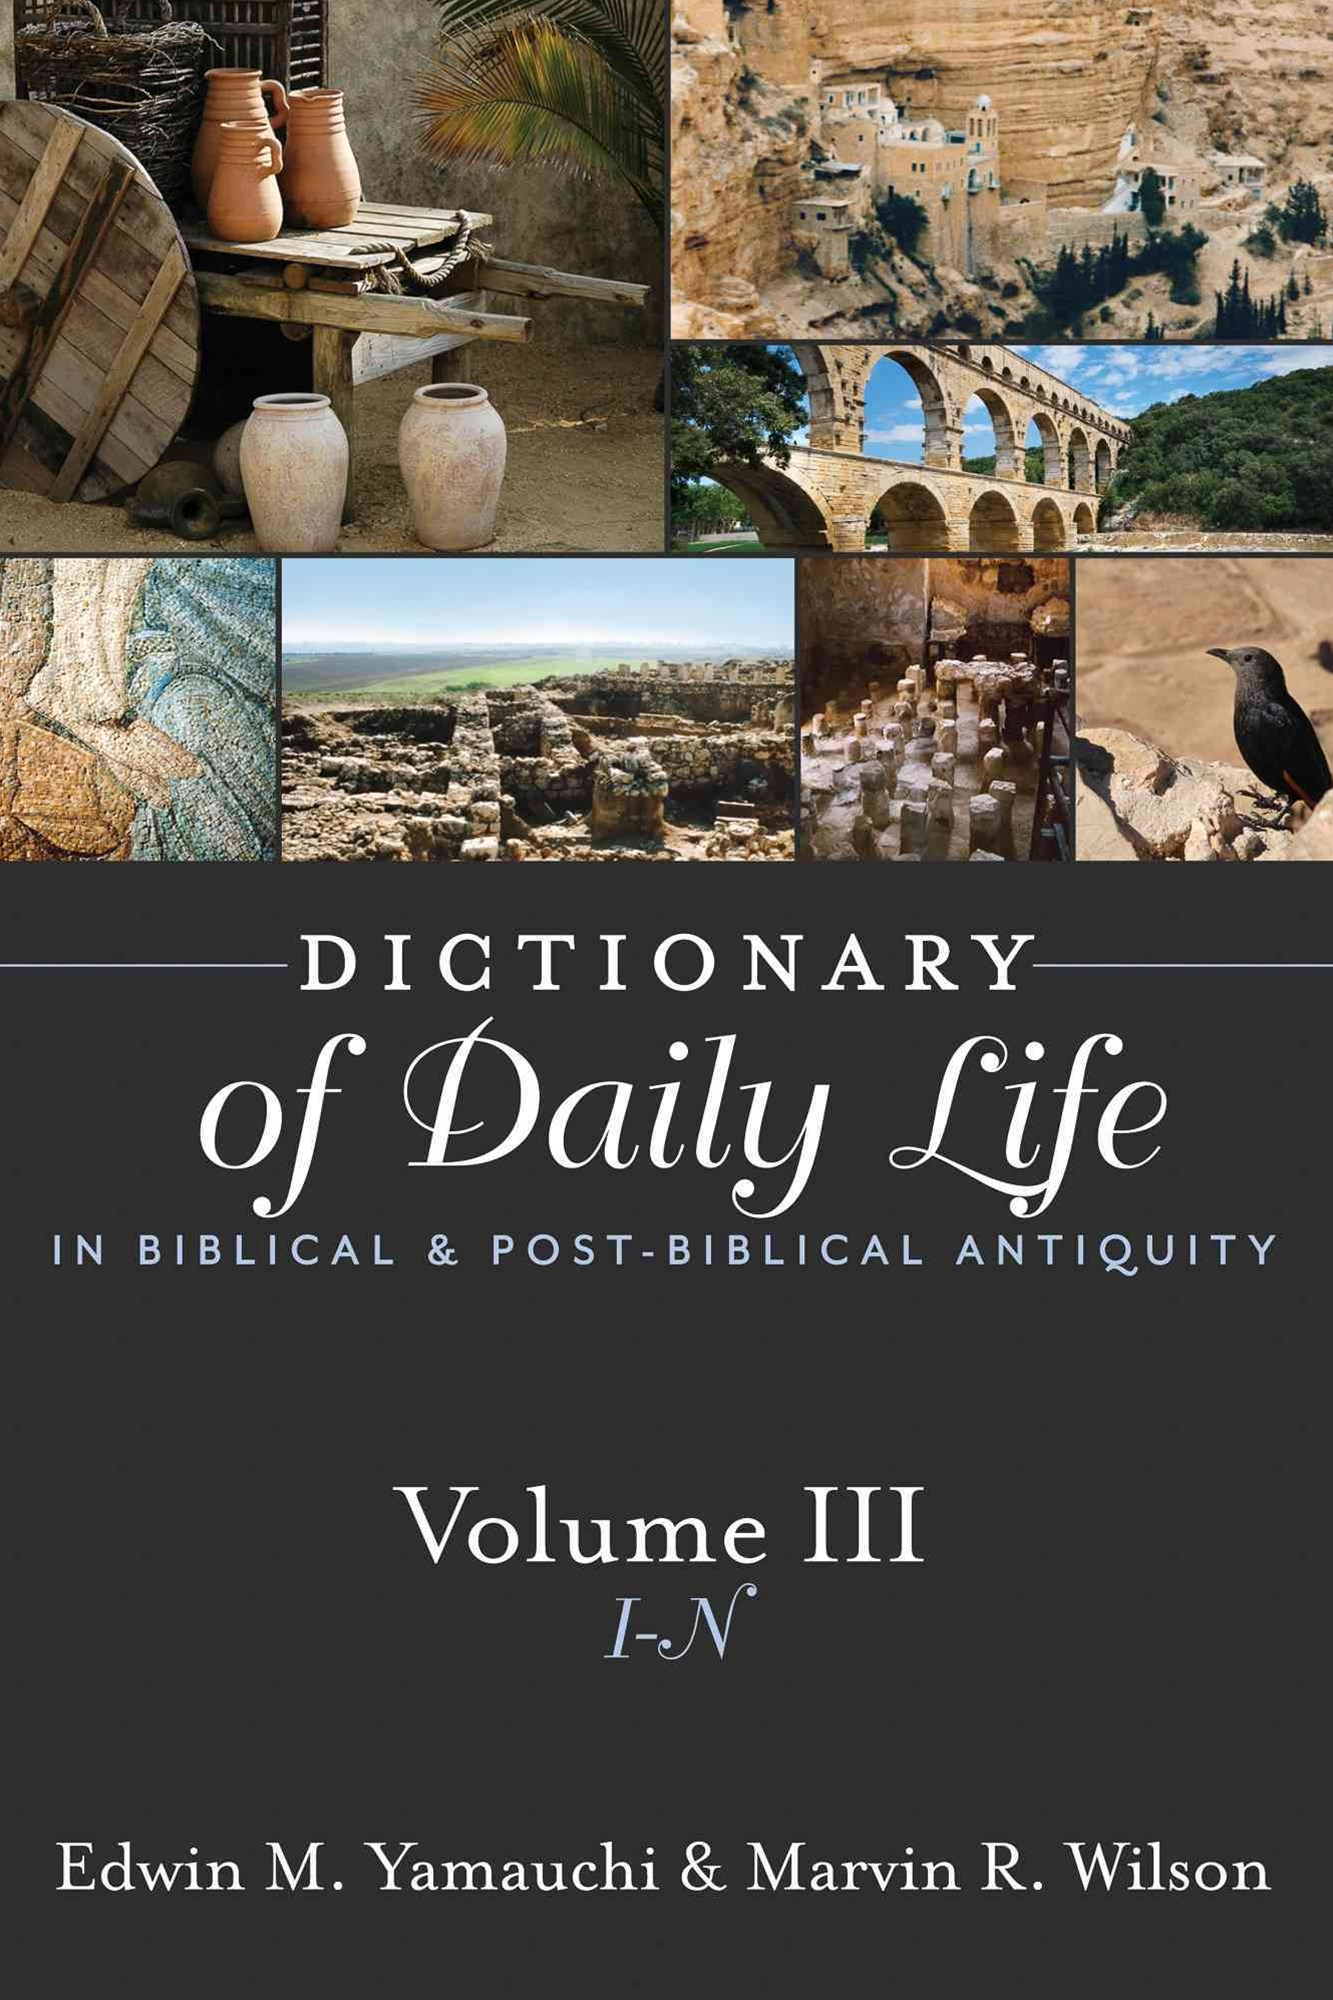 Dictionary of Daily Life in Biblical & Post-Biblical Antiquity: I-N